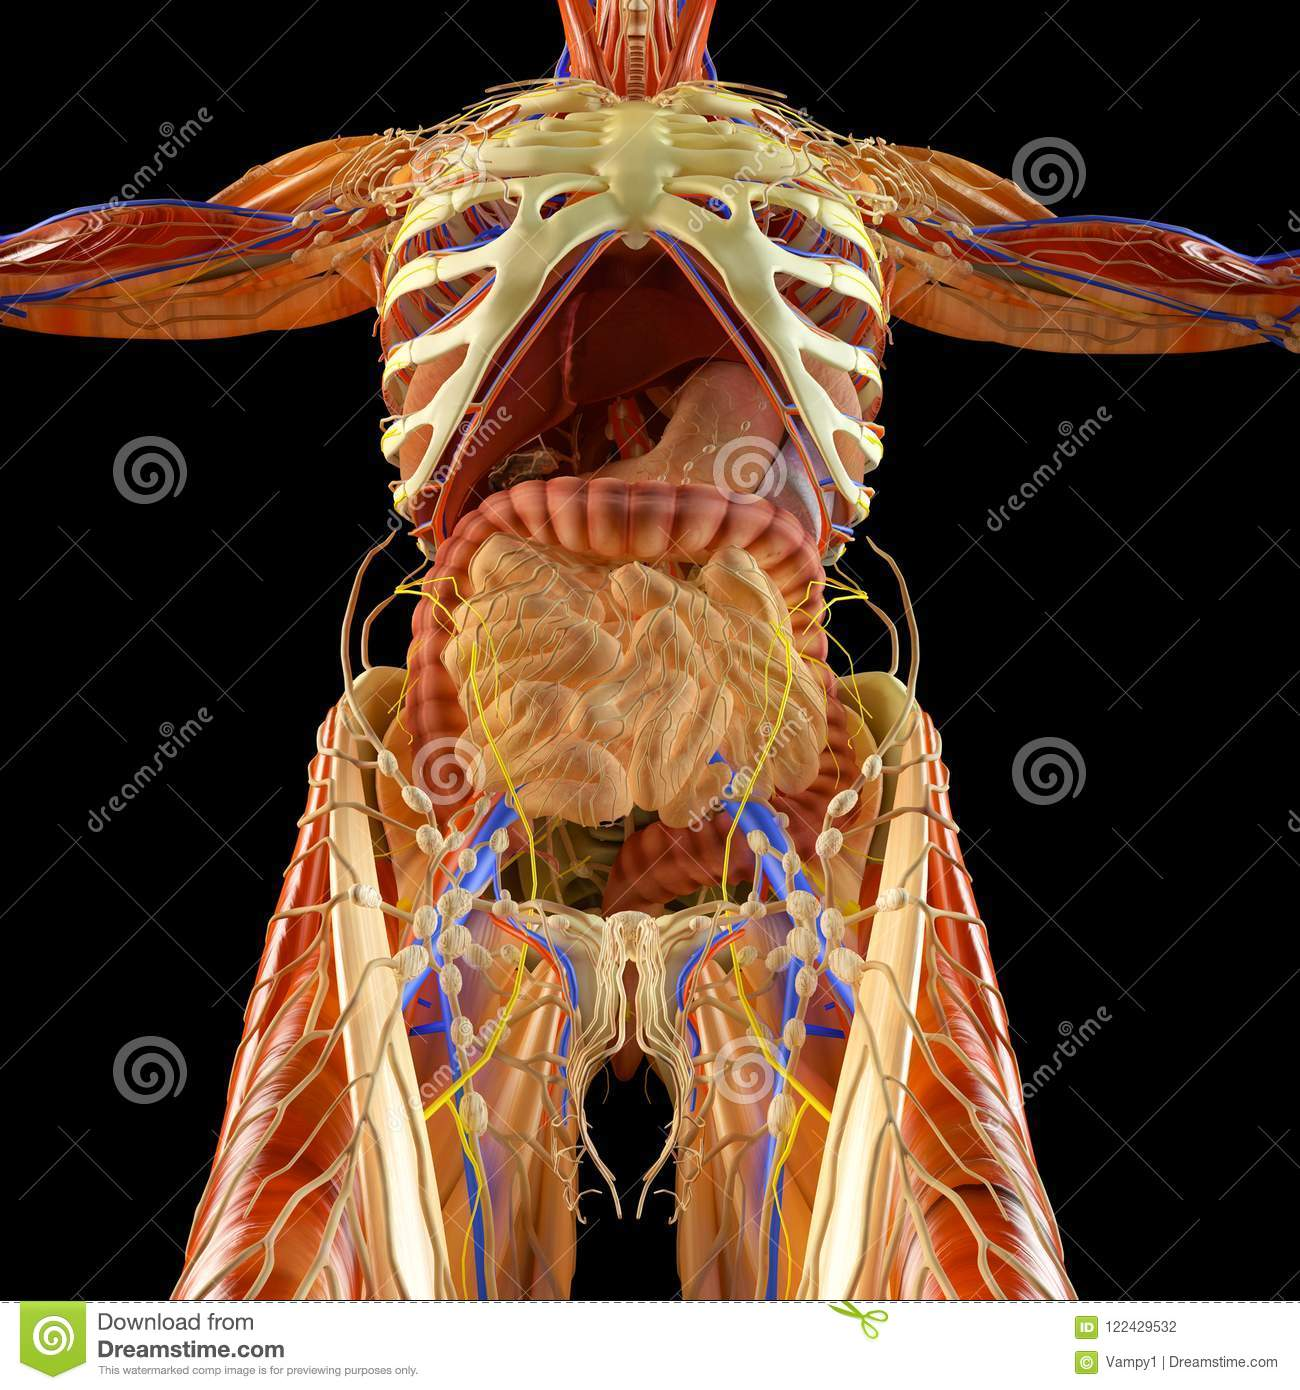 Intestine Digestive System Stomach Esophagus Duodenum Colon Elongated Shade Human Anatomy Human Body X Ray D Rendering